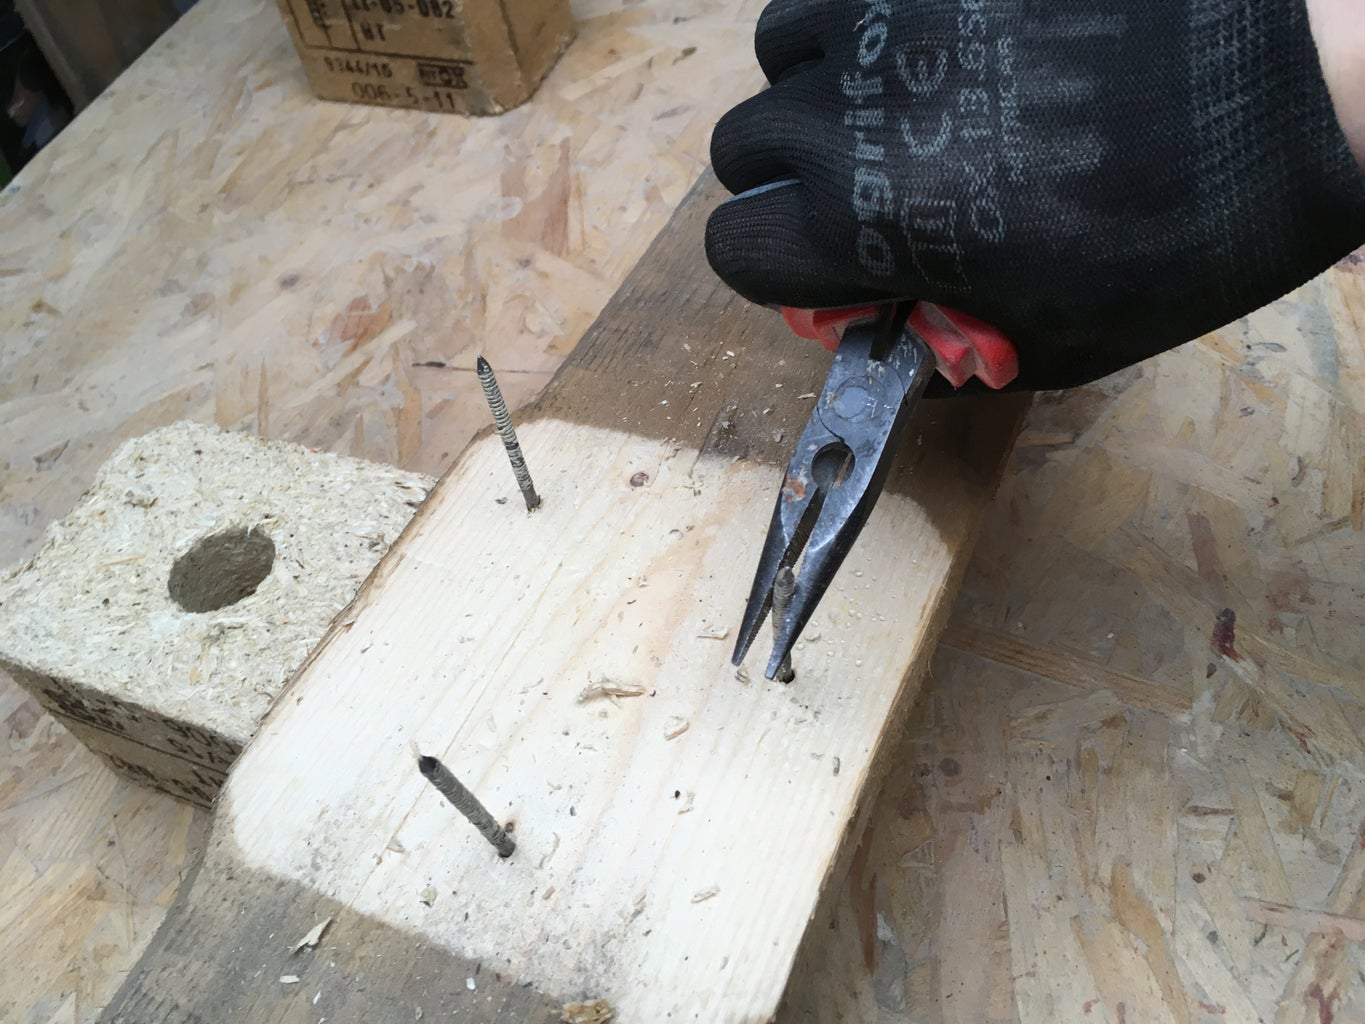 HOW TO DISASSEMBLE a PALLET - STEP 3